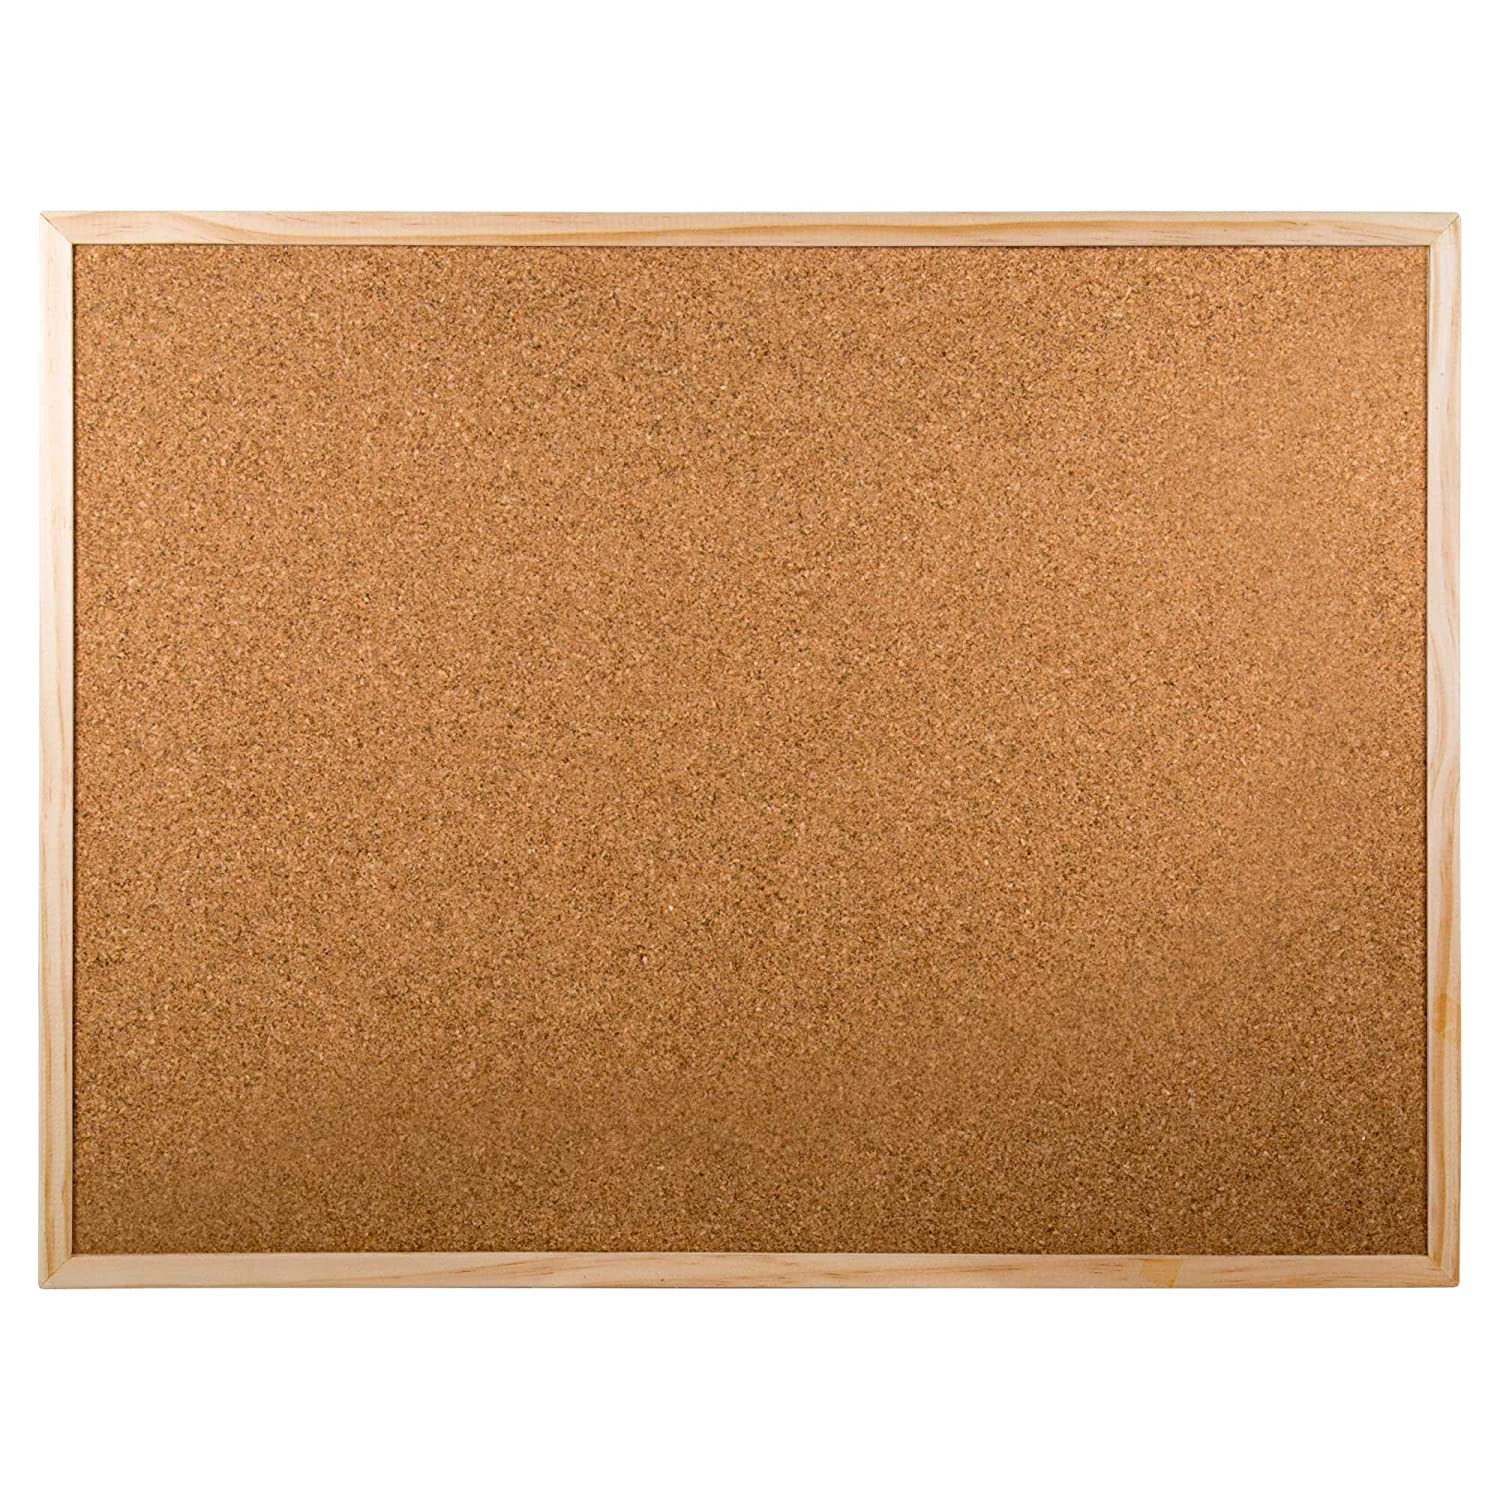 Office Works, Cork Board, 17 x 23 inches, Beige CTG Brands Inc. 30838